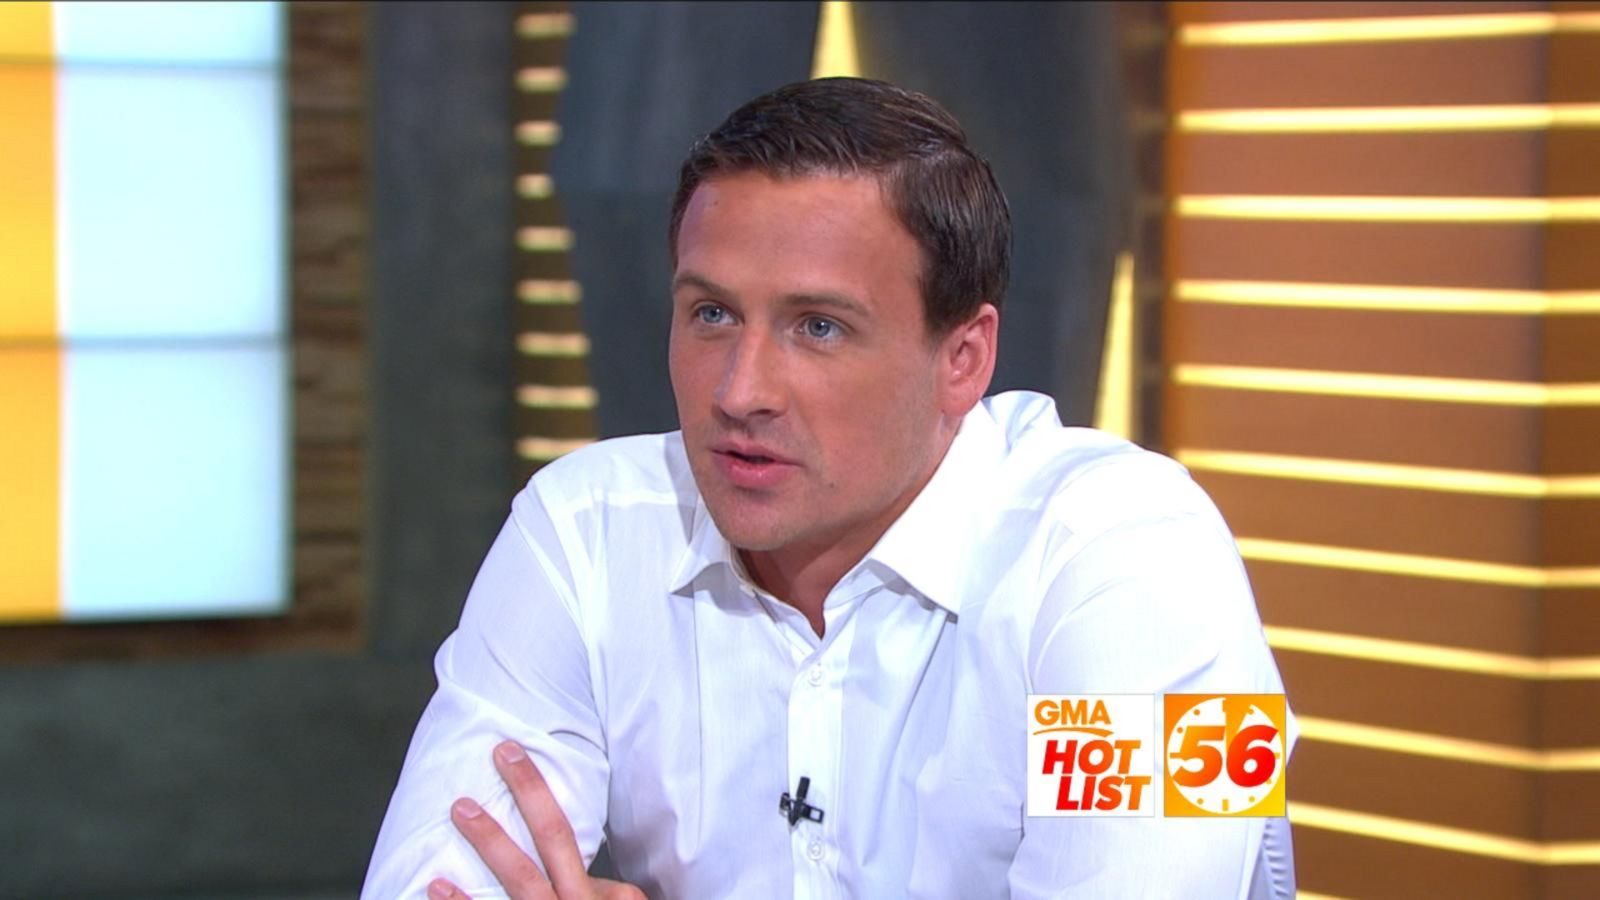 VIDEO: 'GMA' Hot List: Ryan Lochte Talks Rio 'Mistake', Joining 'DWTS'